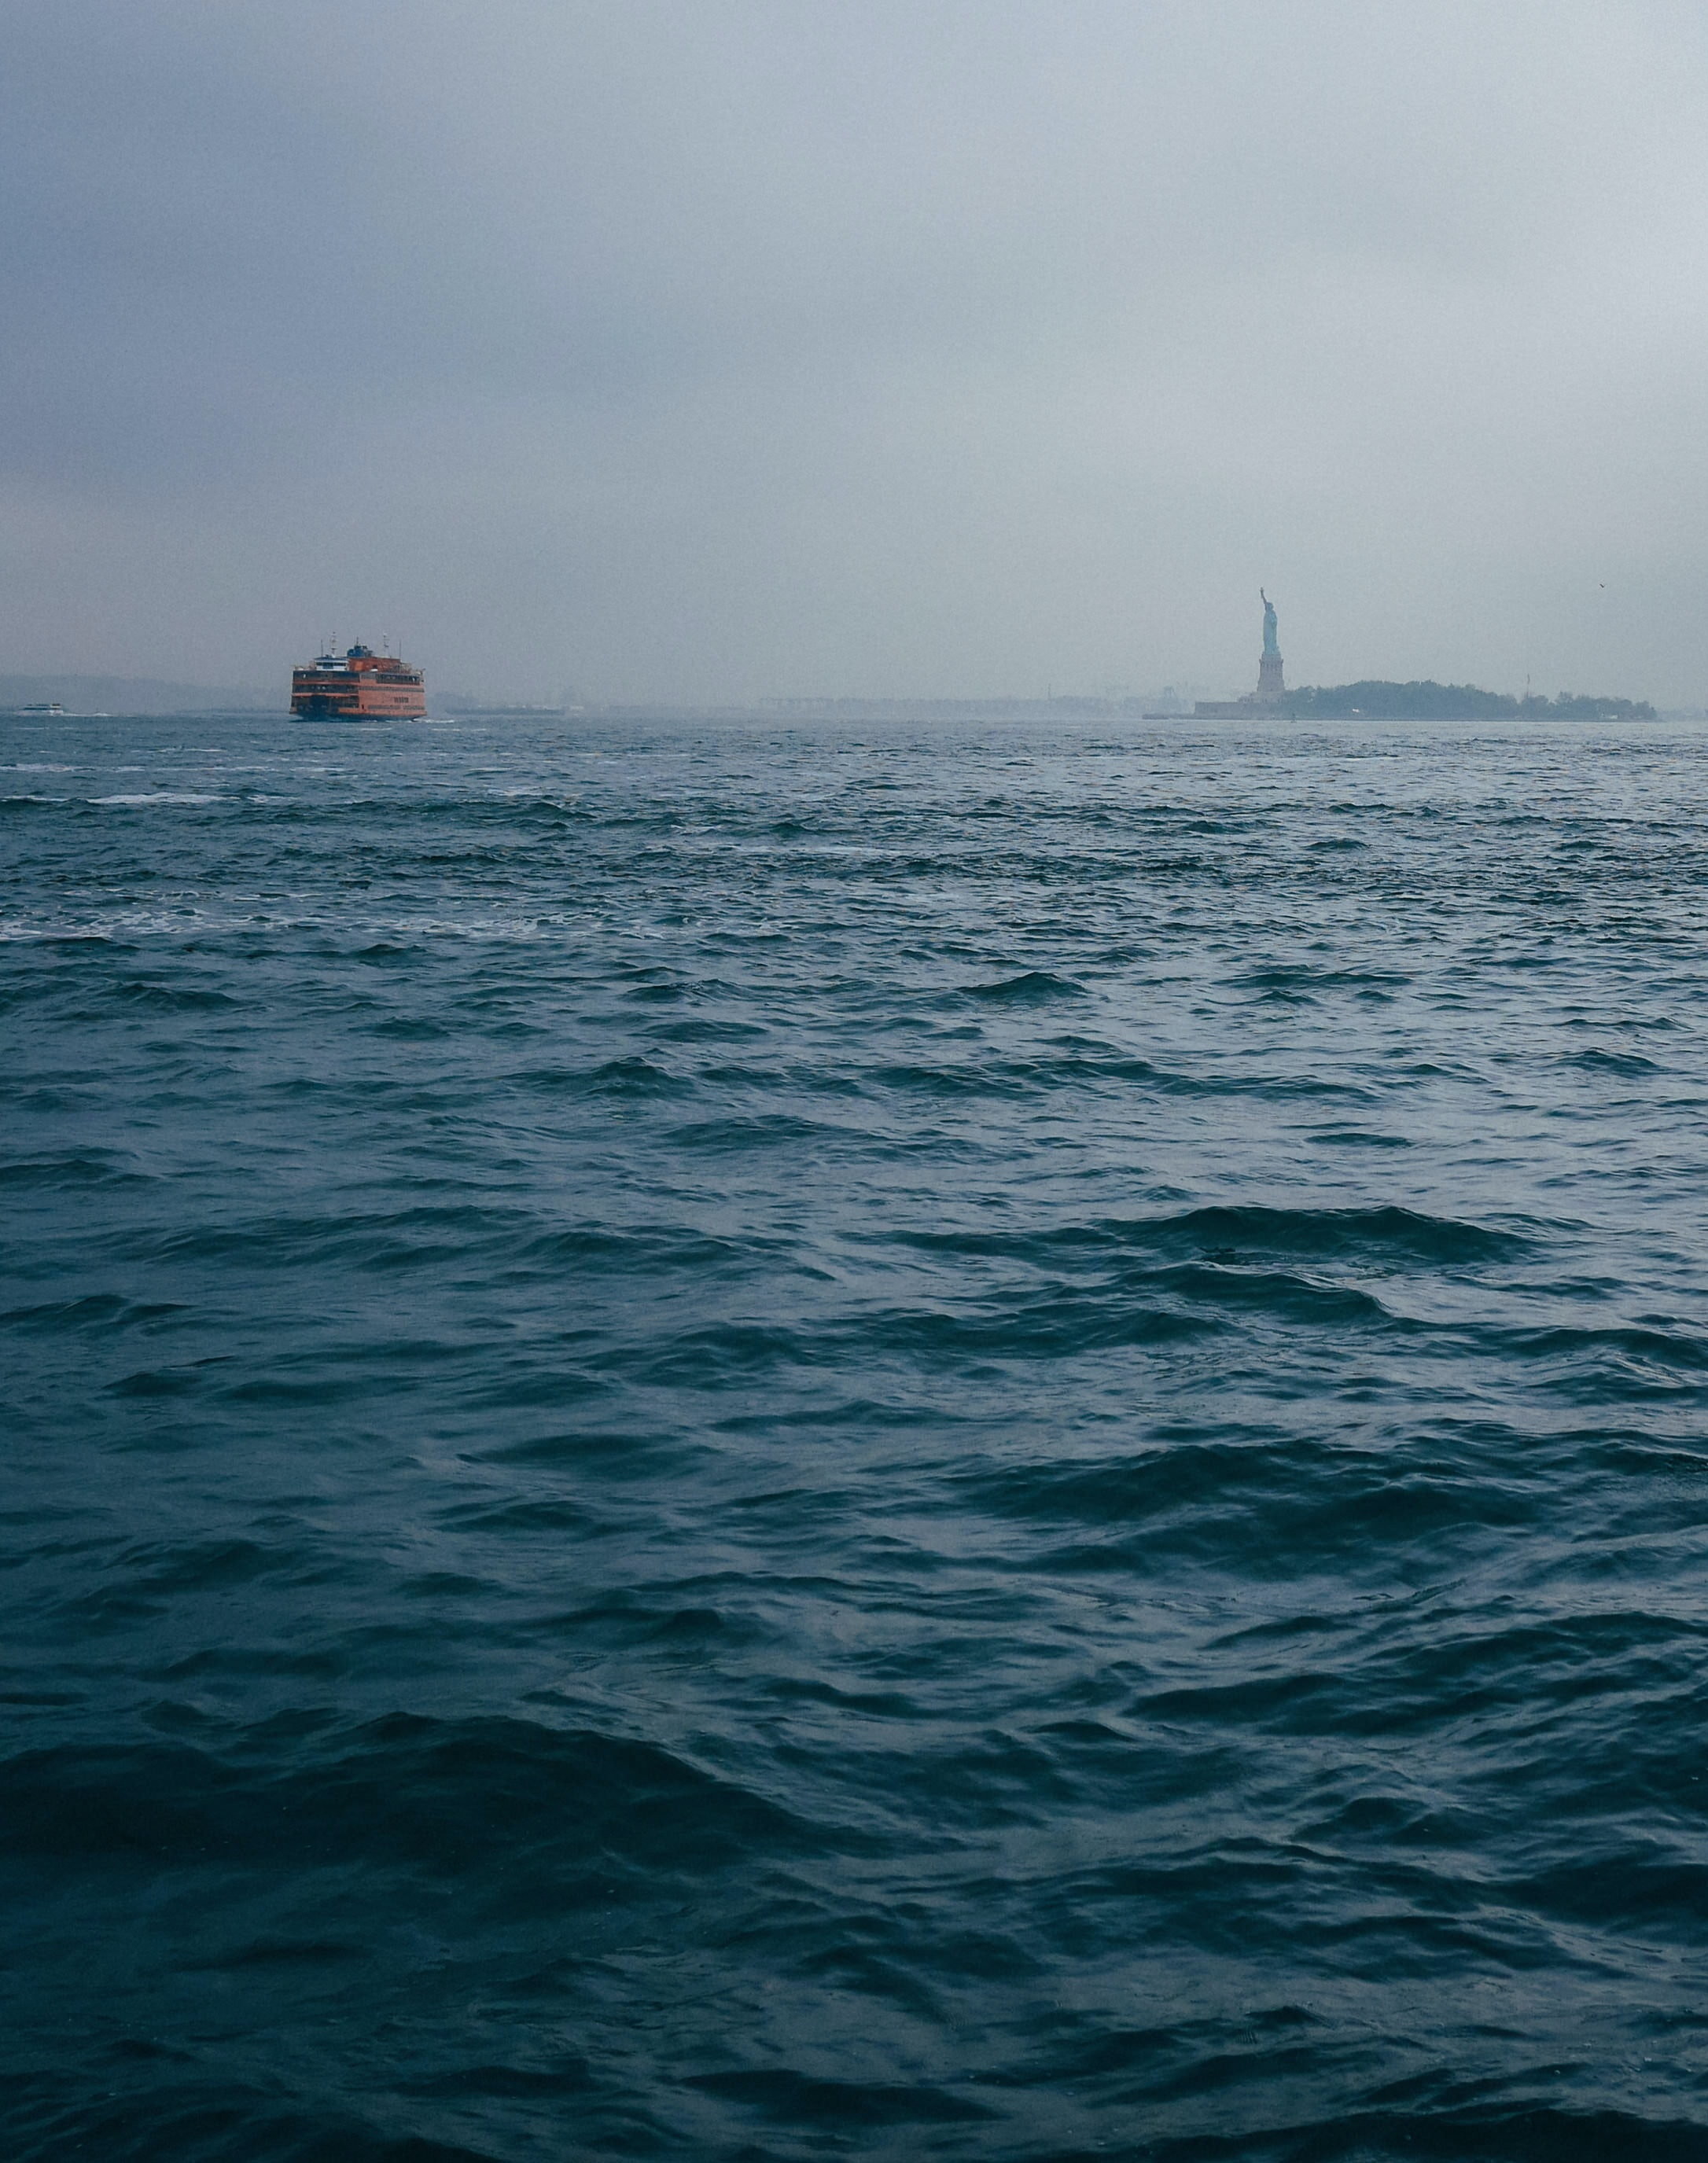 The Statue of Liberty and a cargo ship from the distance on a foggy day